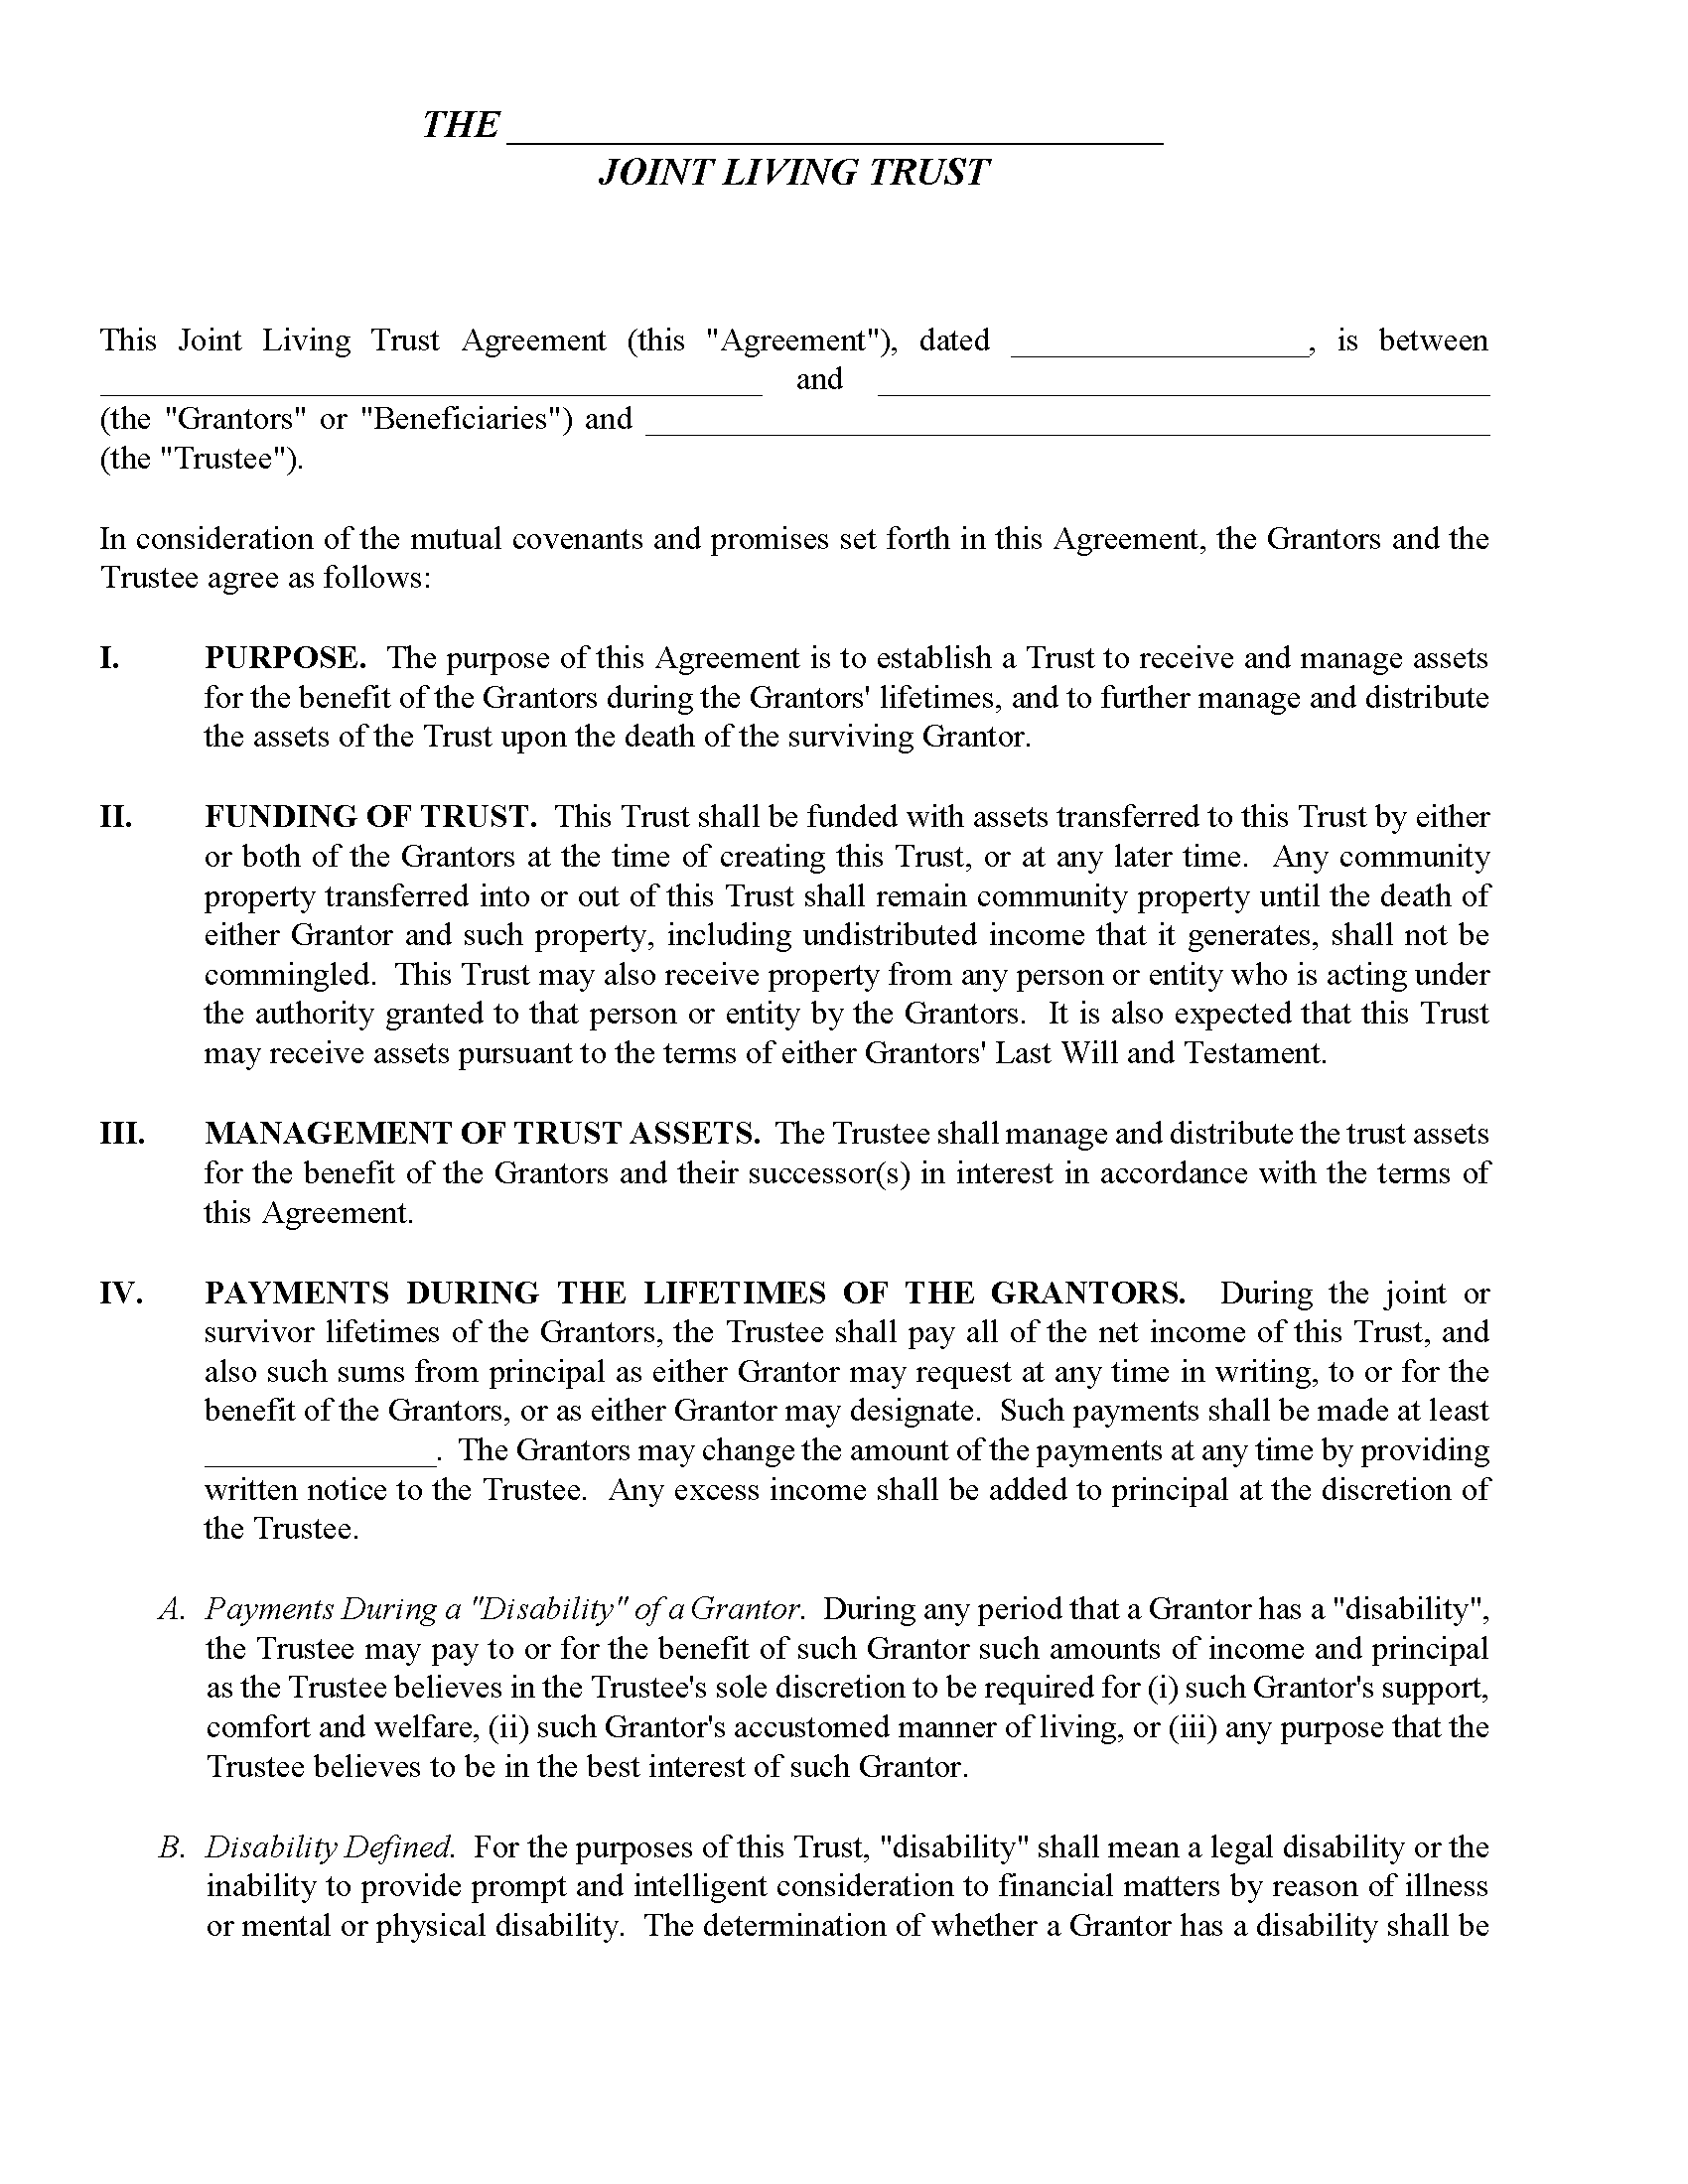 Virginia Joint Living Trust Form